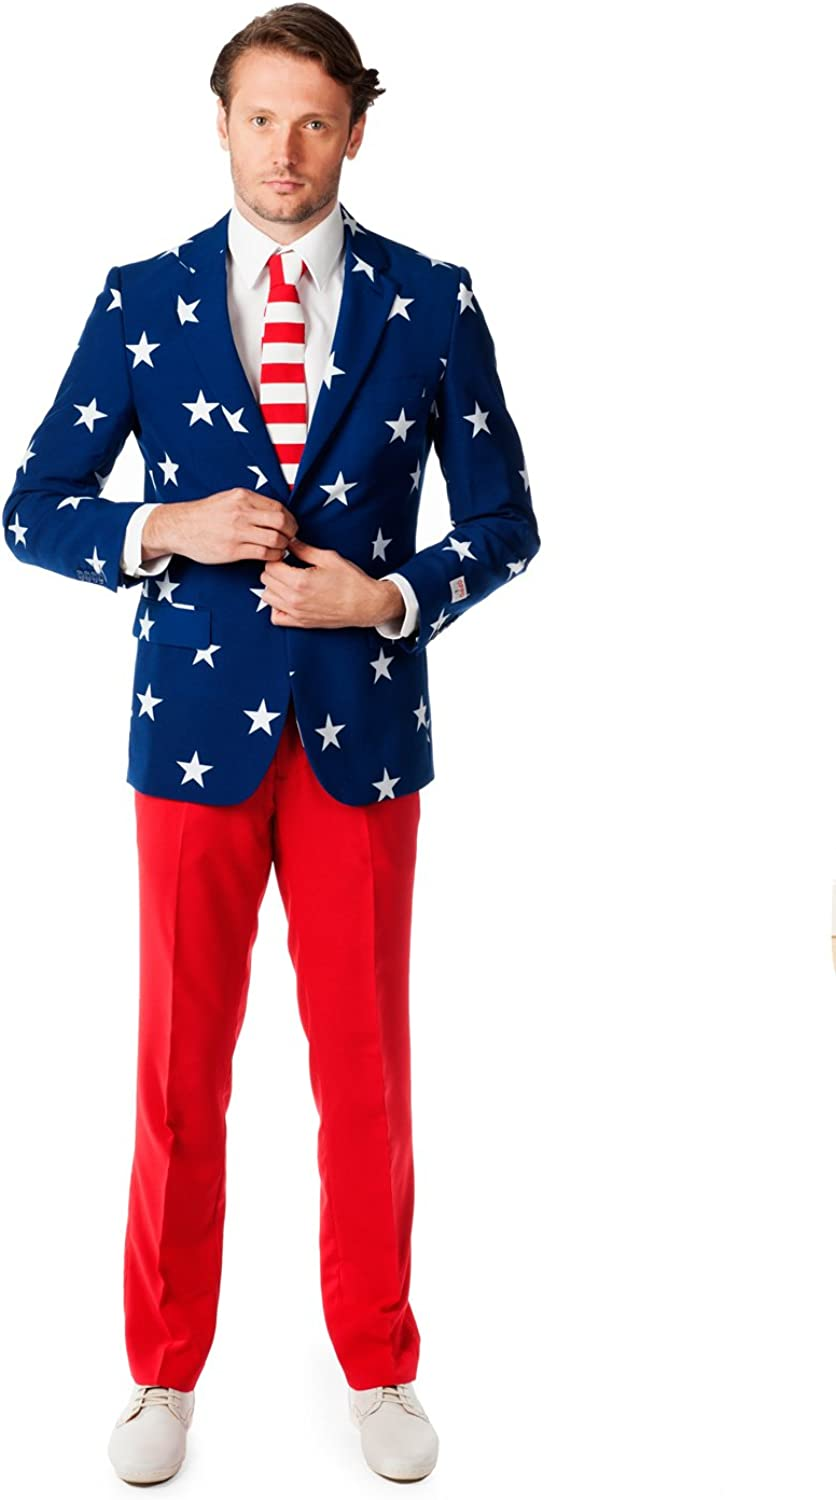 1960s Mens Suits | 70s Mens Disco Suits OppoSuits Men American Flag Suit - USA Outfit for the 4th of July with Red White and Blue Jacket Pants and Tie $99.99 AT vintagedancer.com